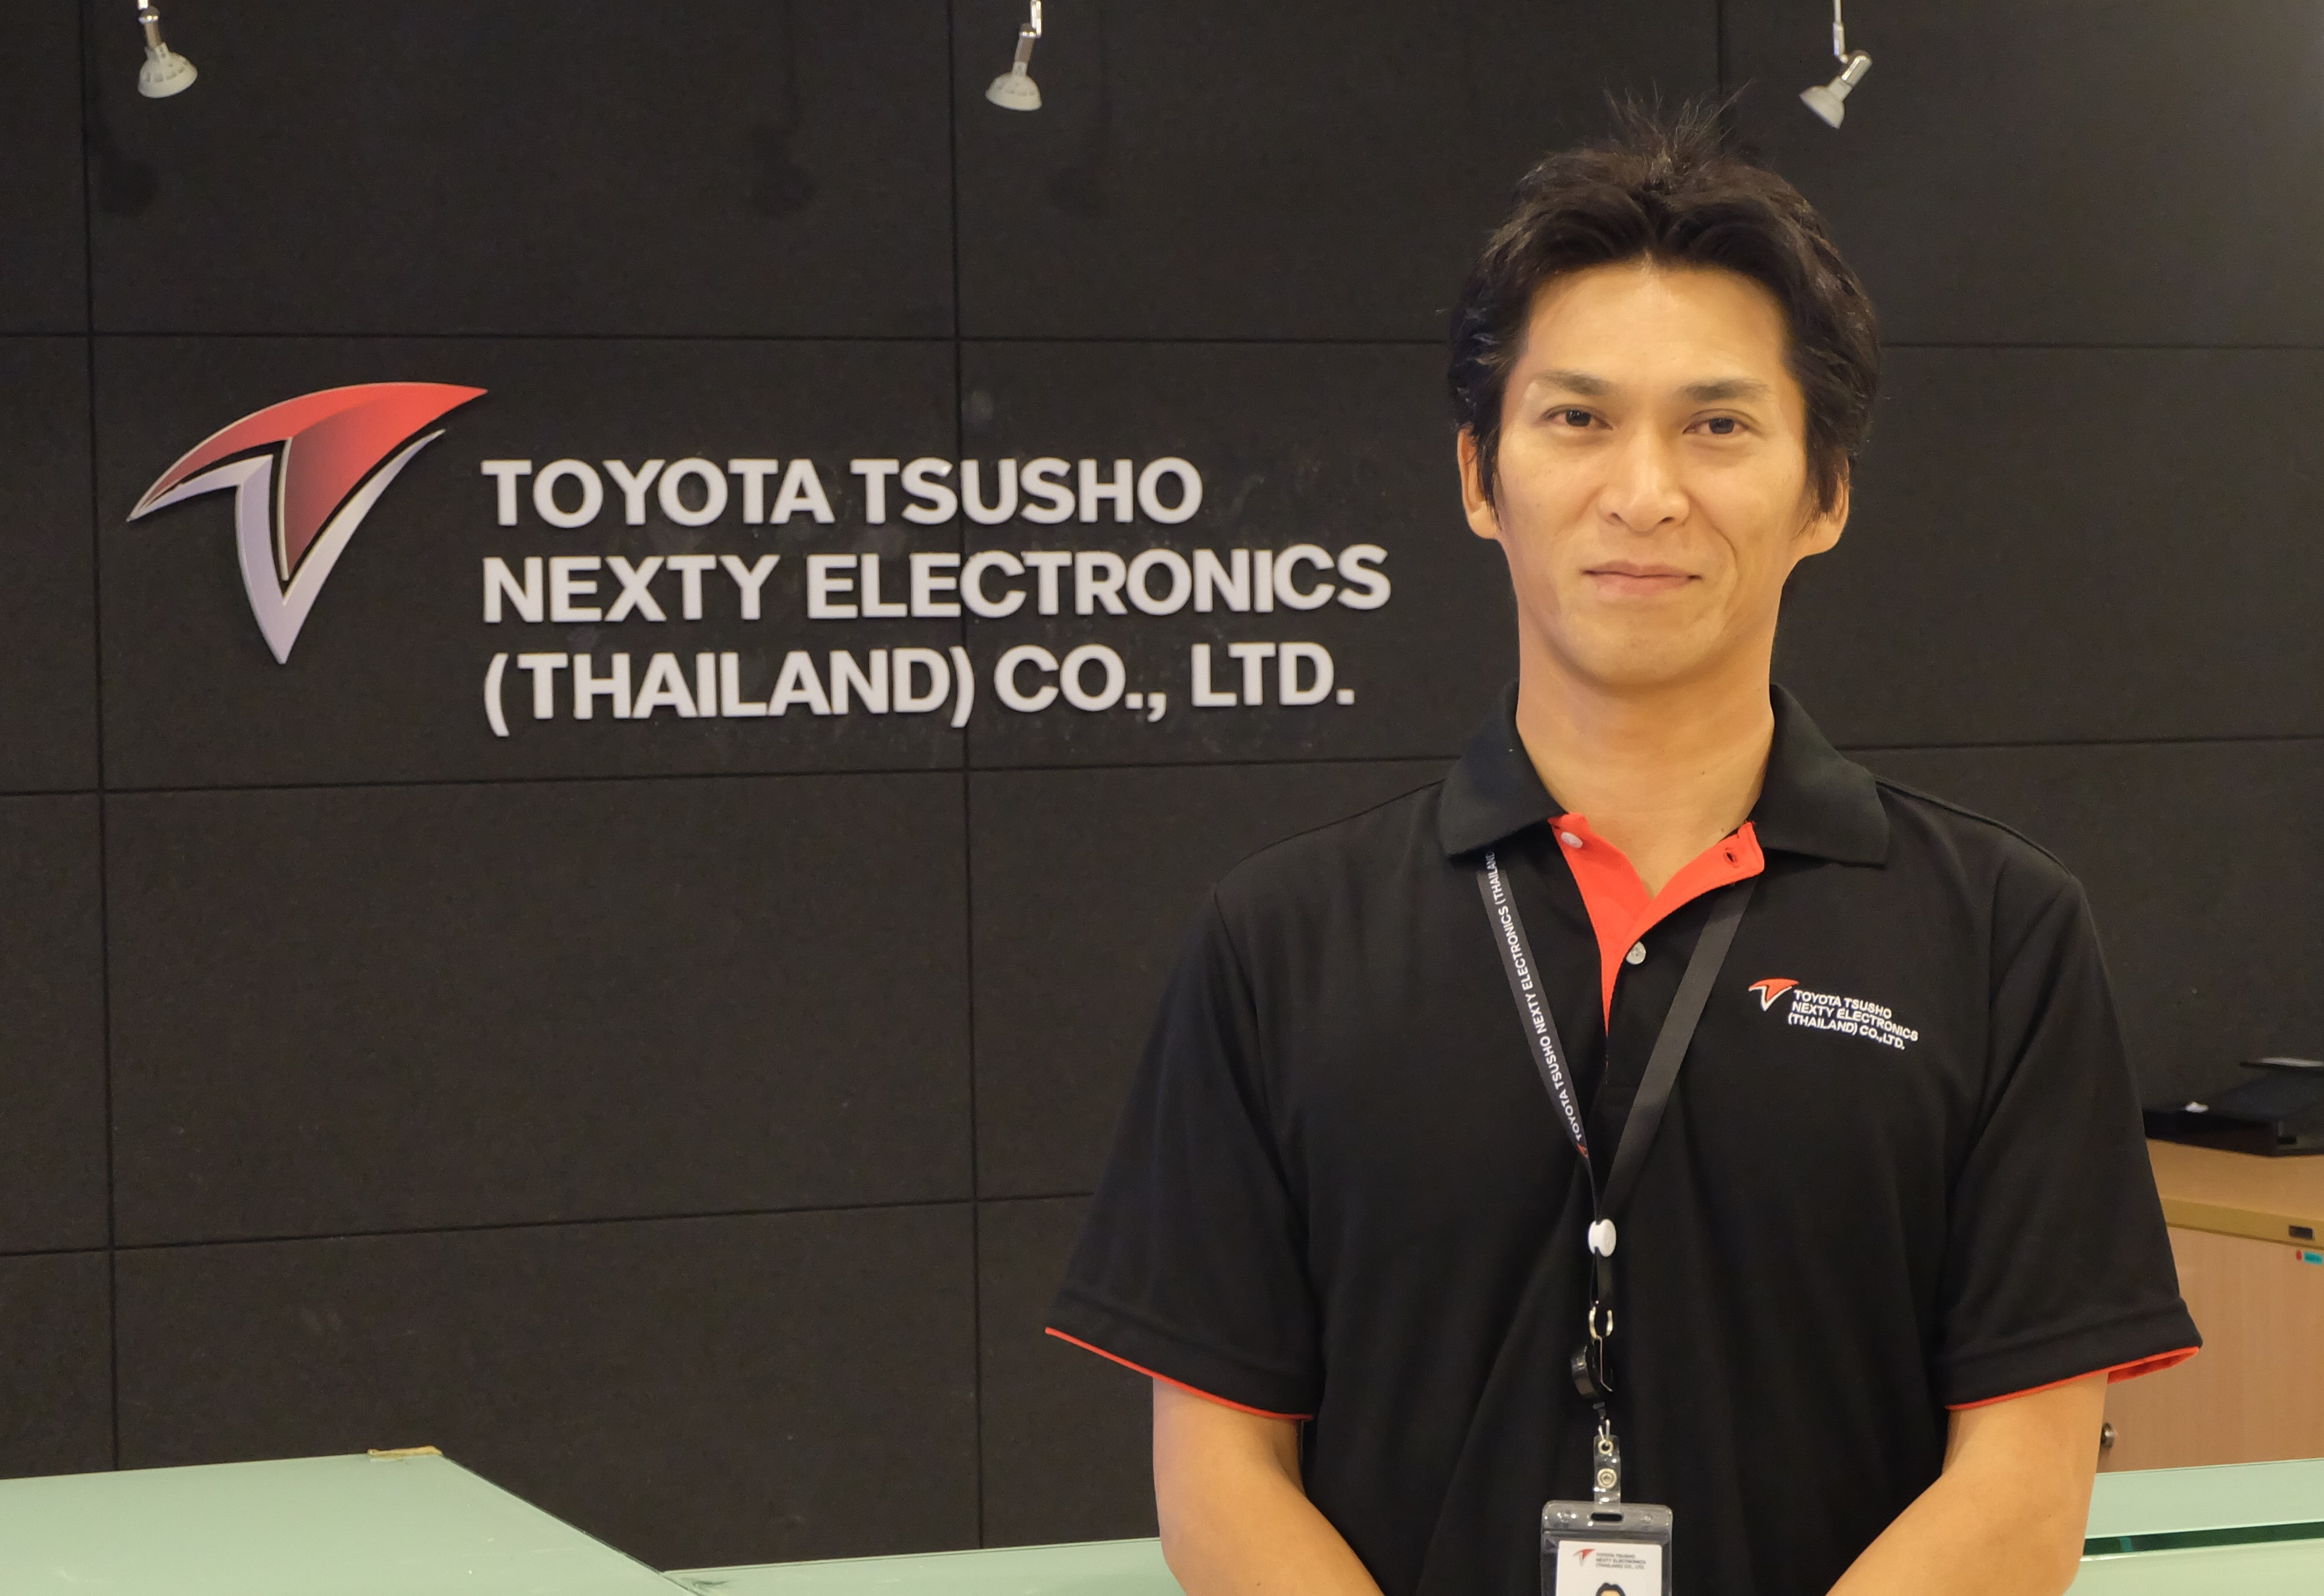 "The company name was changed to "" TOYOTA TSUSHO NEXTY ELECTRONICS (THAILAND) CO., LTD. """